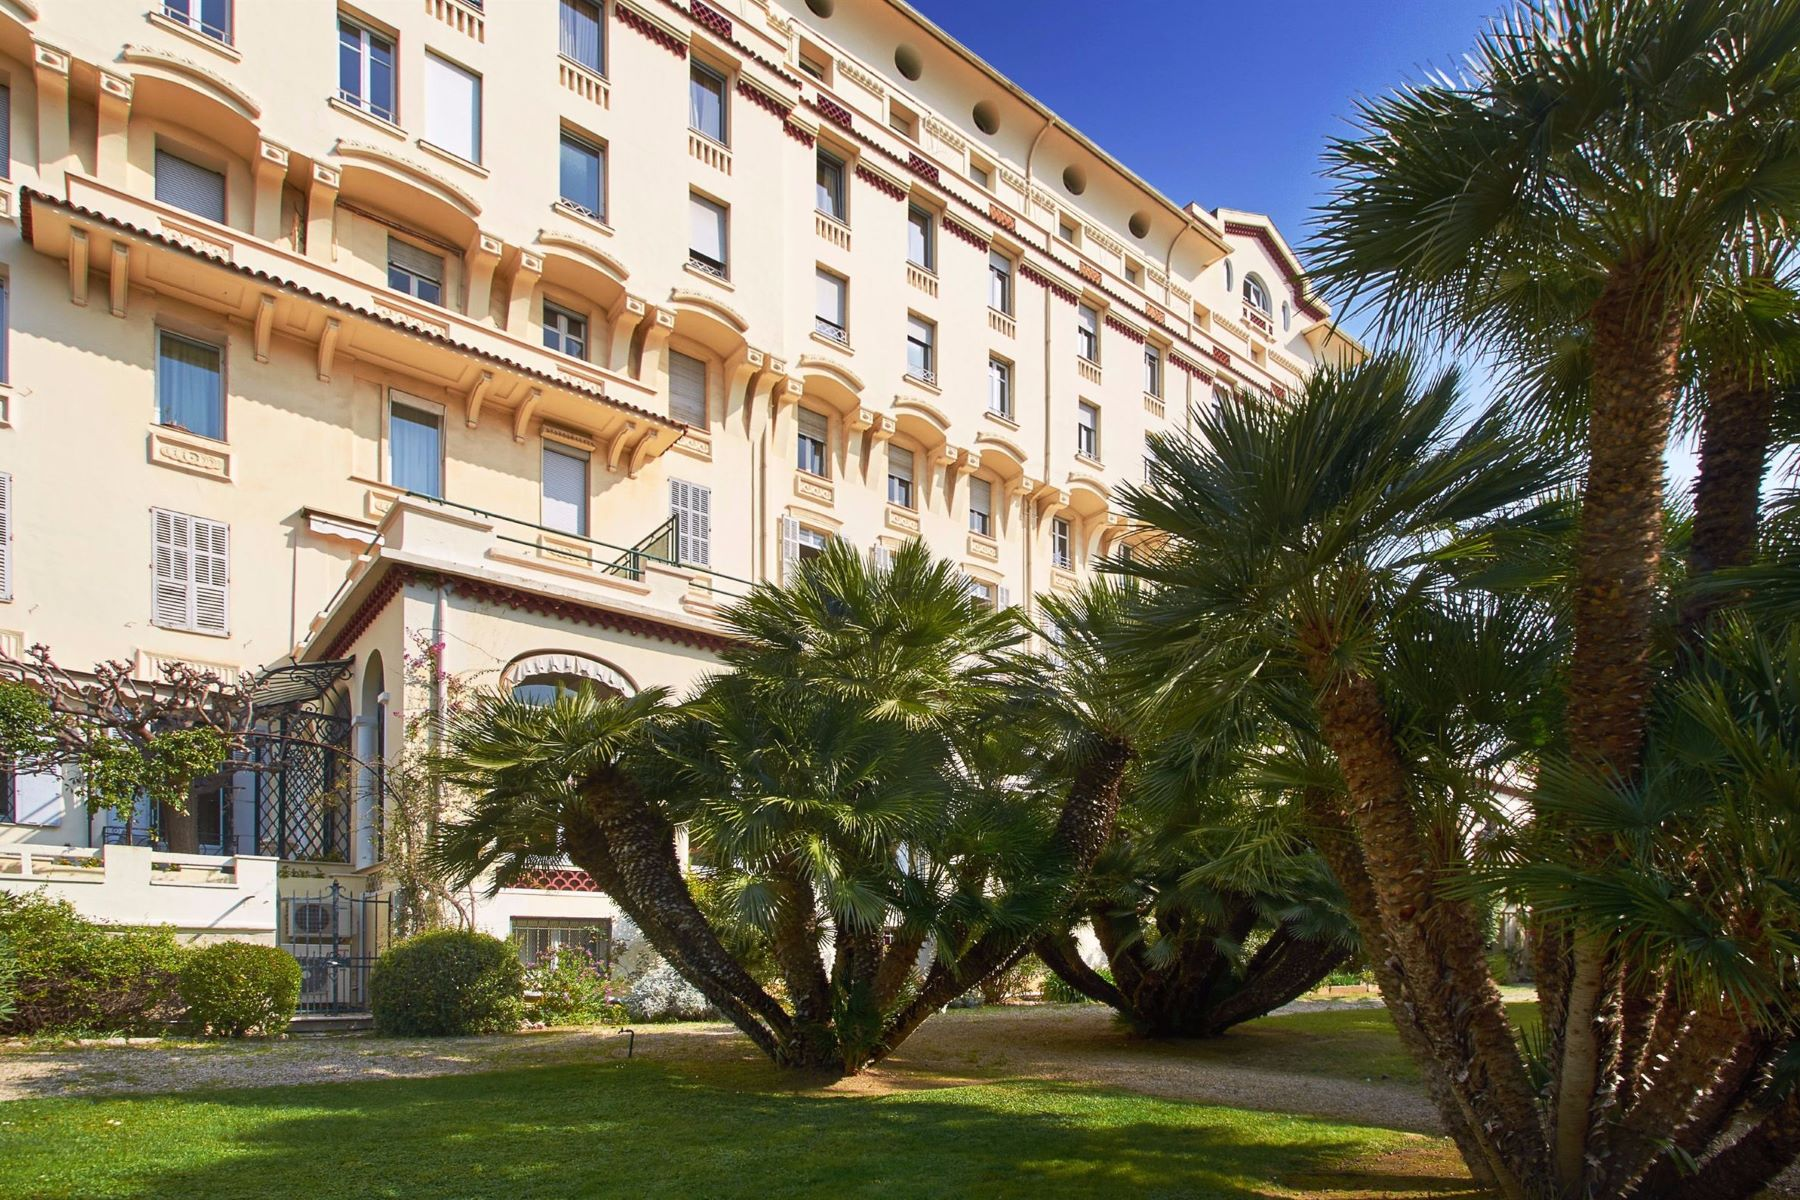 Property for Sale at Bourgeois style apartment in Belle-Époque mansion - Cannes Oxford Cannes, Provence-Alpes-Cote D'Azur 06400 France